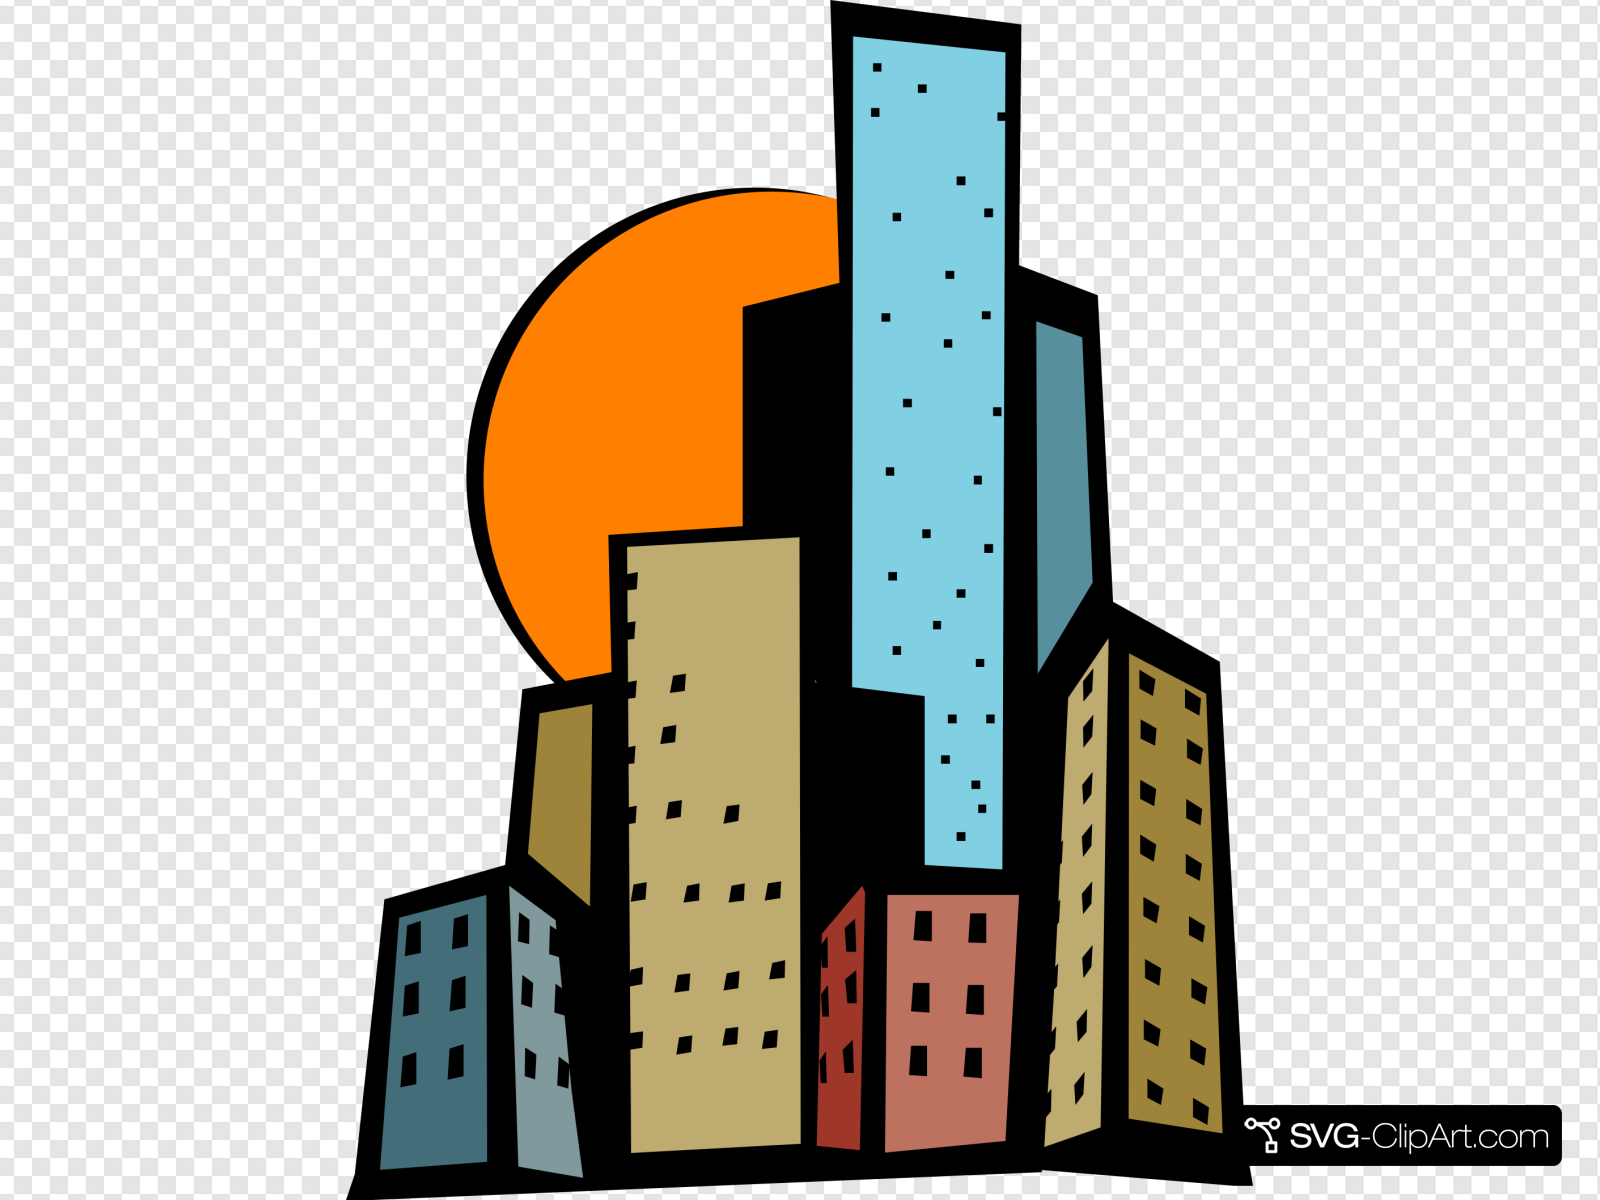 svg transparent stock Download for free png. City clipart